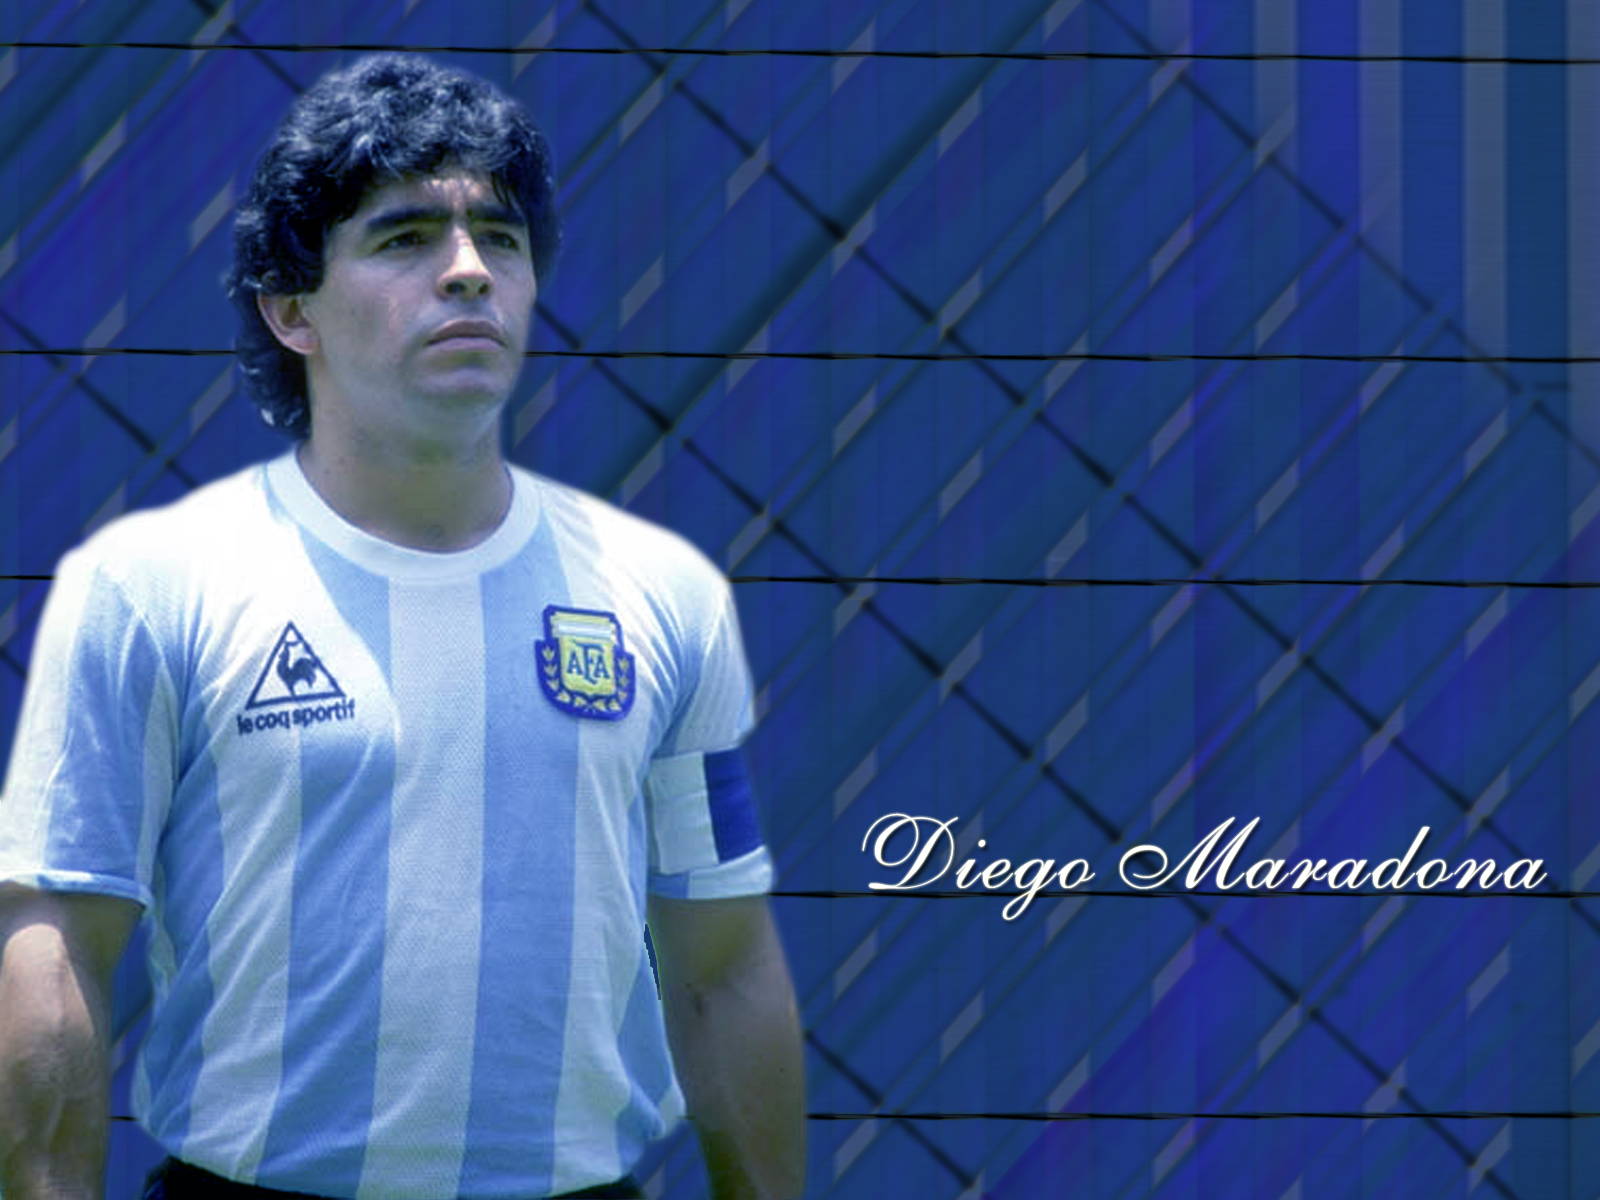 Diego Maradjjjjona - HD Wallpapers